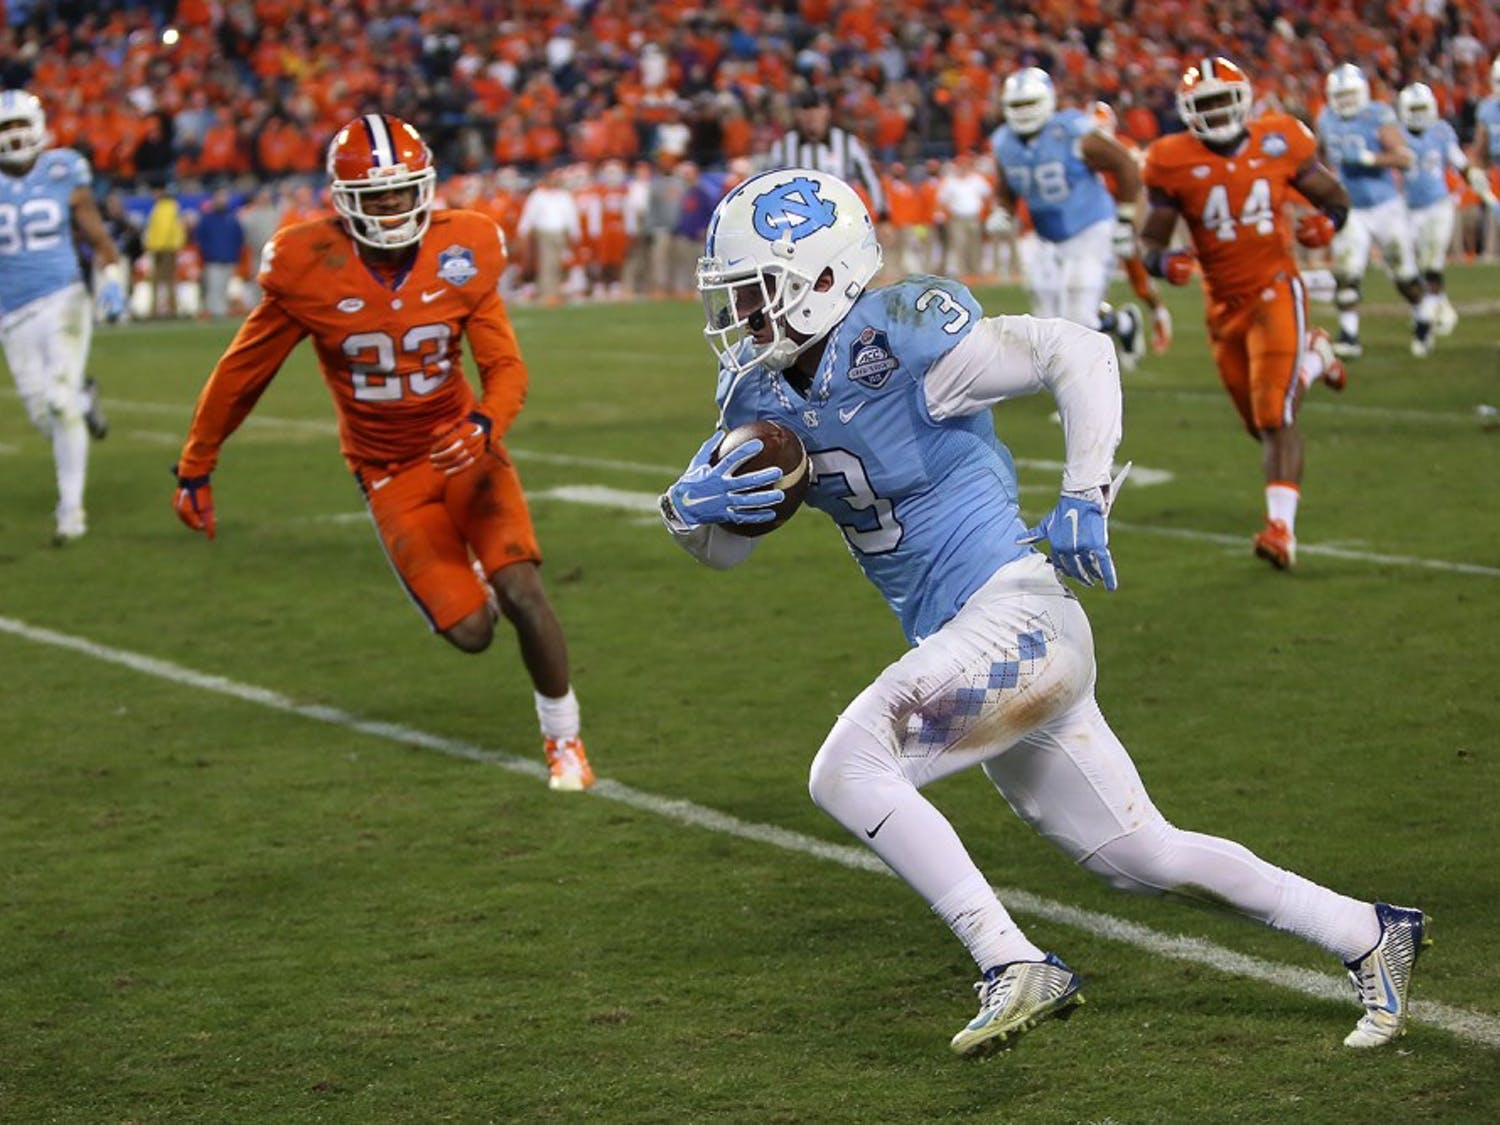 Wide receiver Ryan Switzer (3) advances into the end zone for a UNC touchdown.